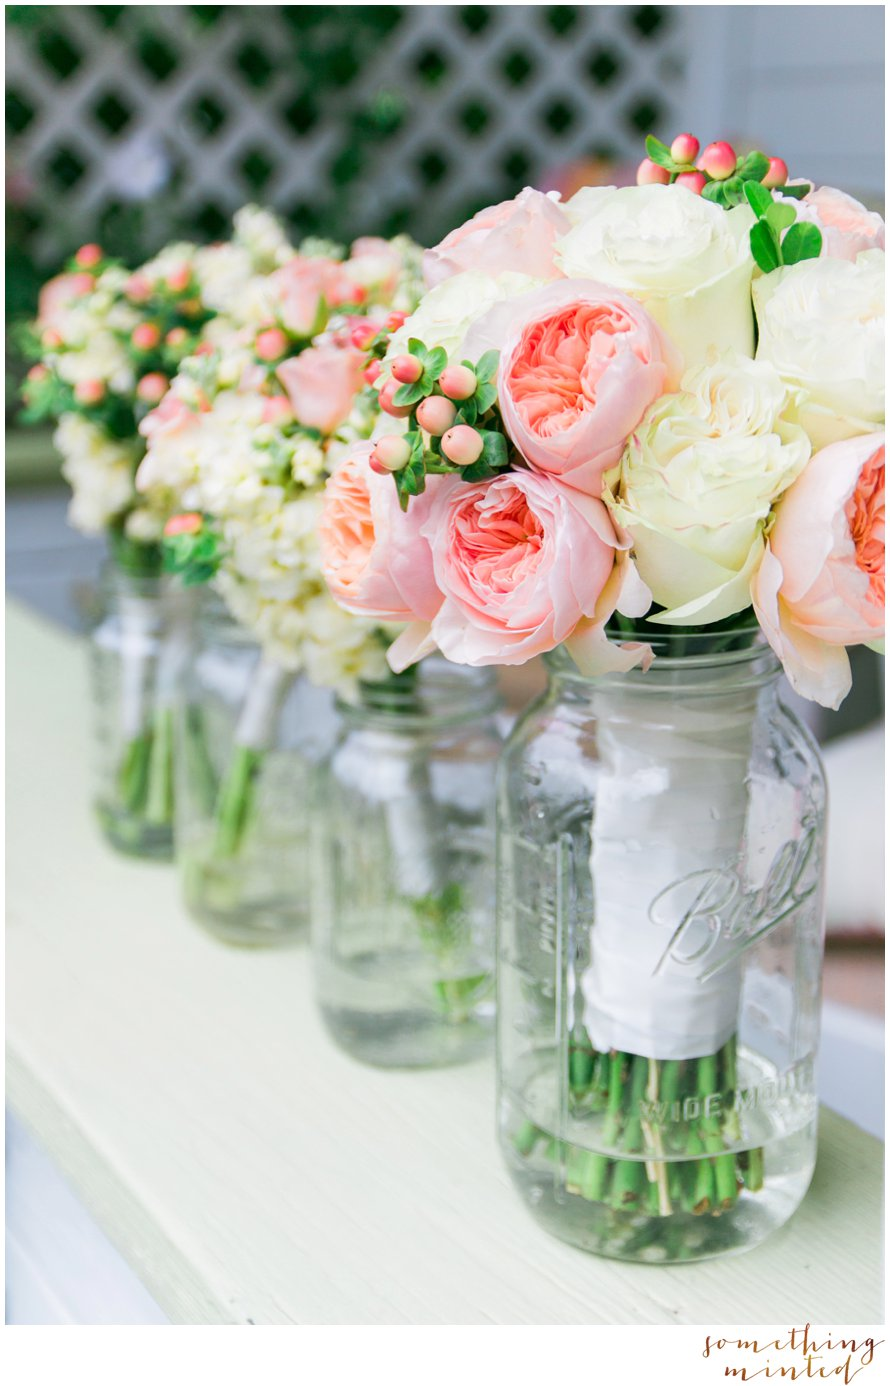 Cheers To This Fun Wedding Held At A Historic Venue Wine And Roses Country Estate